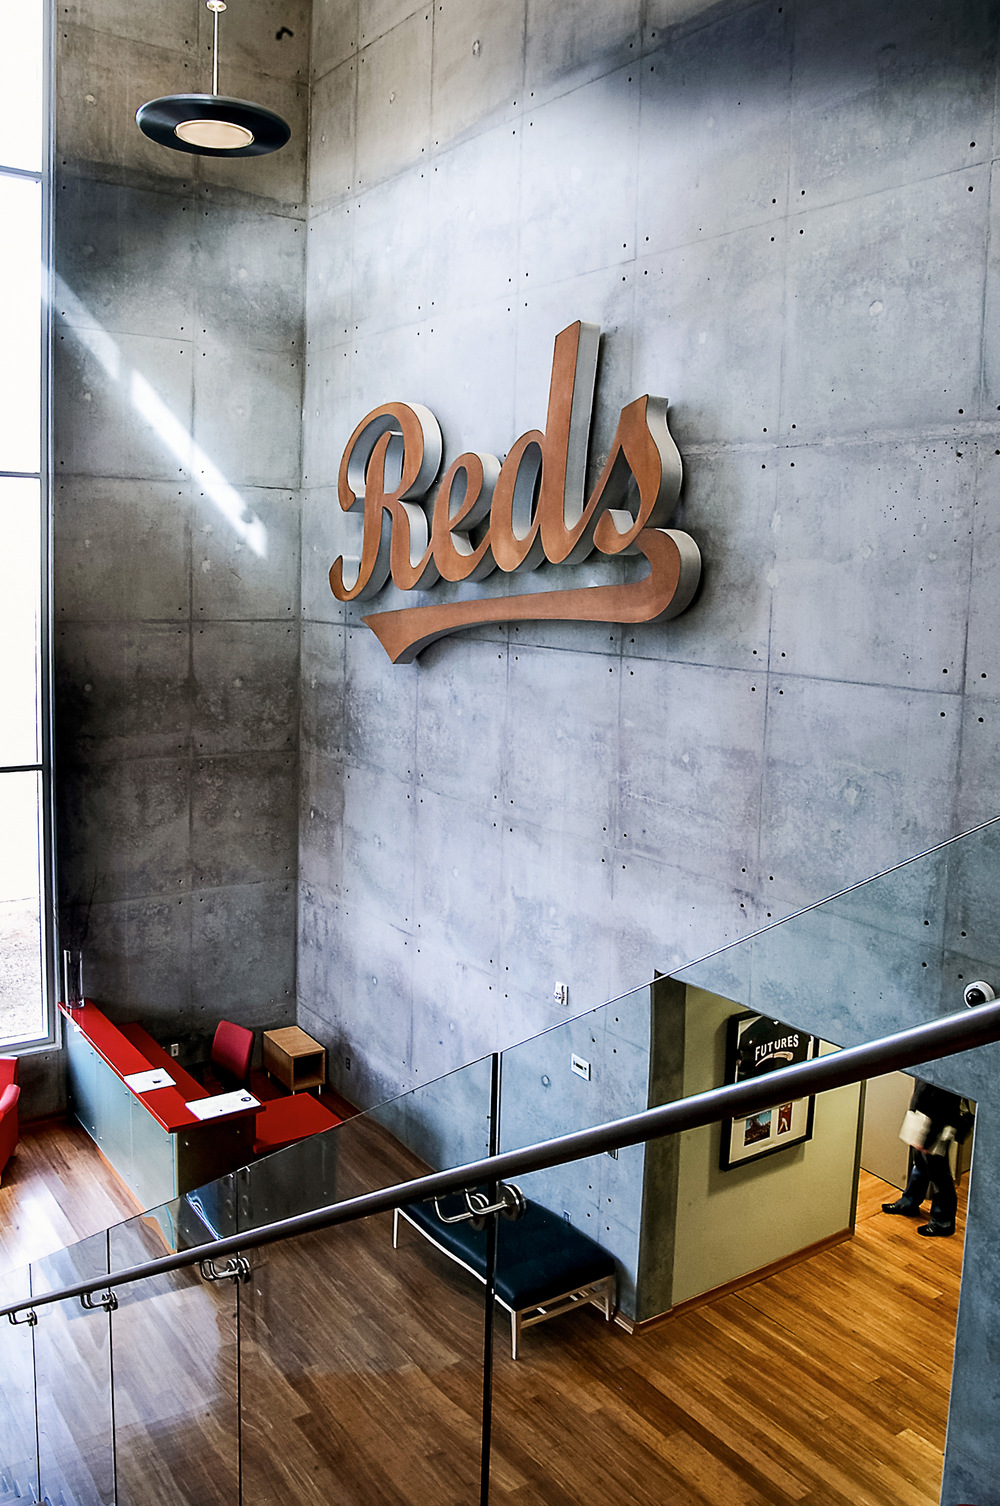 The Cincinnati Reds logo prominently brands the team as guests enter the lobby. The branding elements from both complexes are consistent in material and illumination.